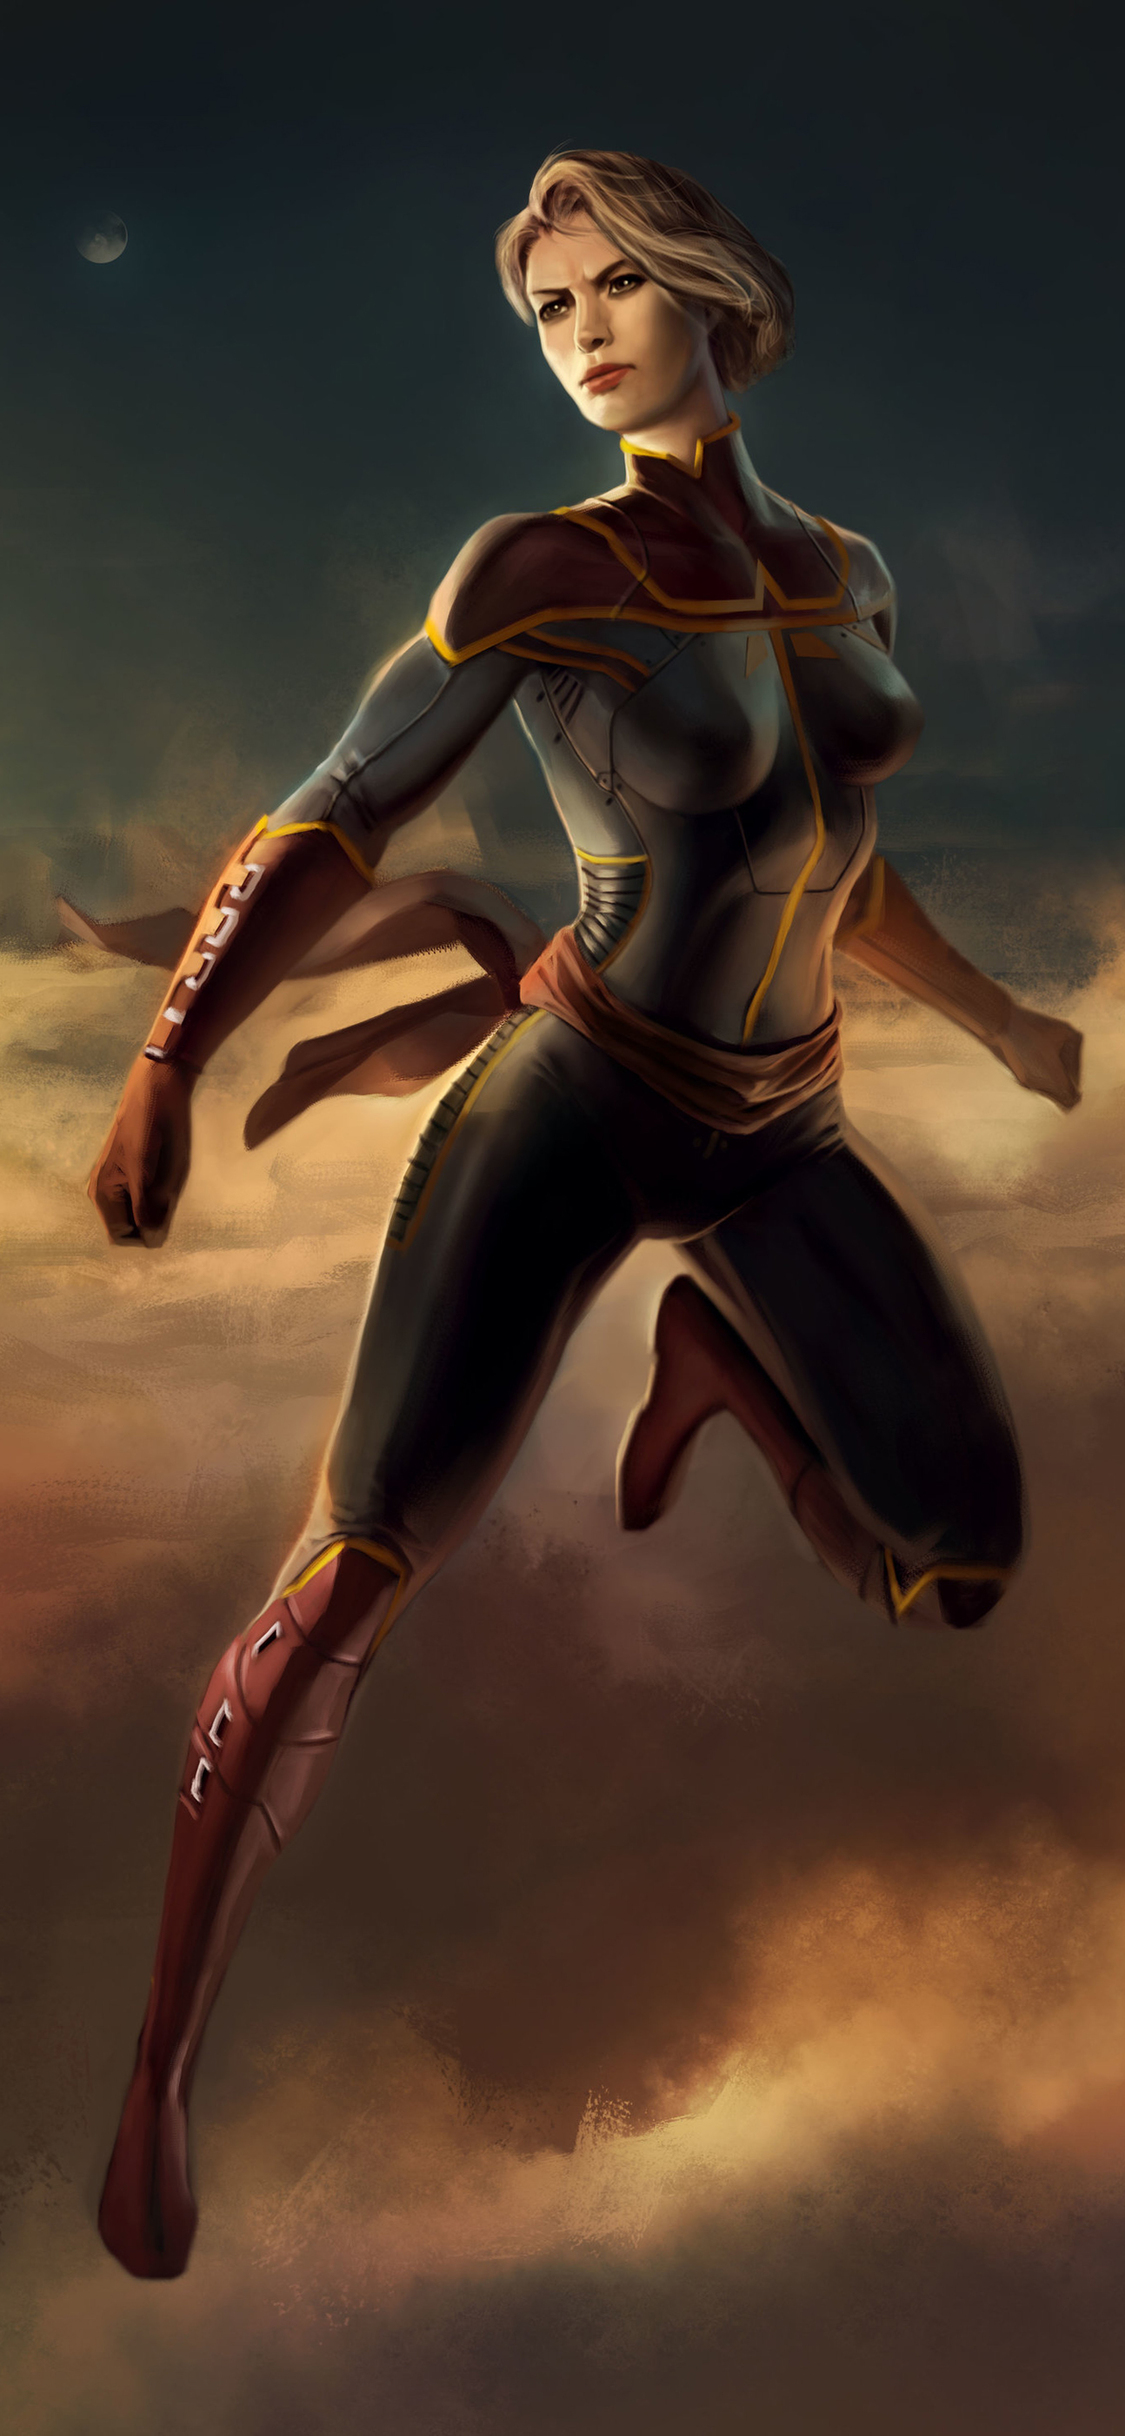 1125x2436 Captain Marvel Art Iphone Xs Iphone 10 Iphone X Hd